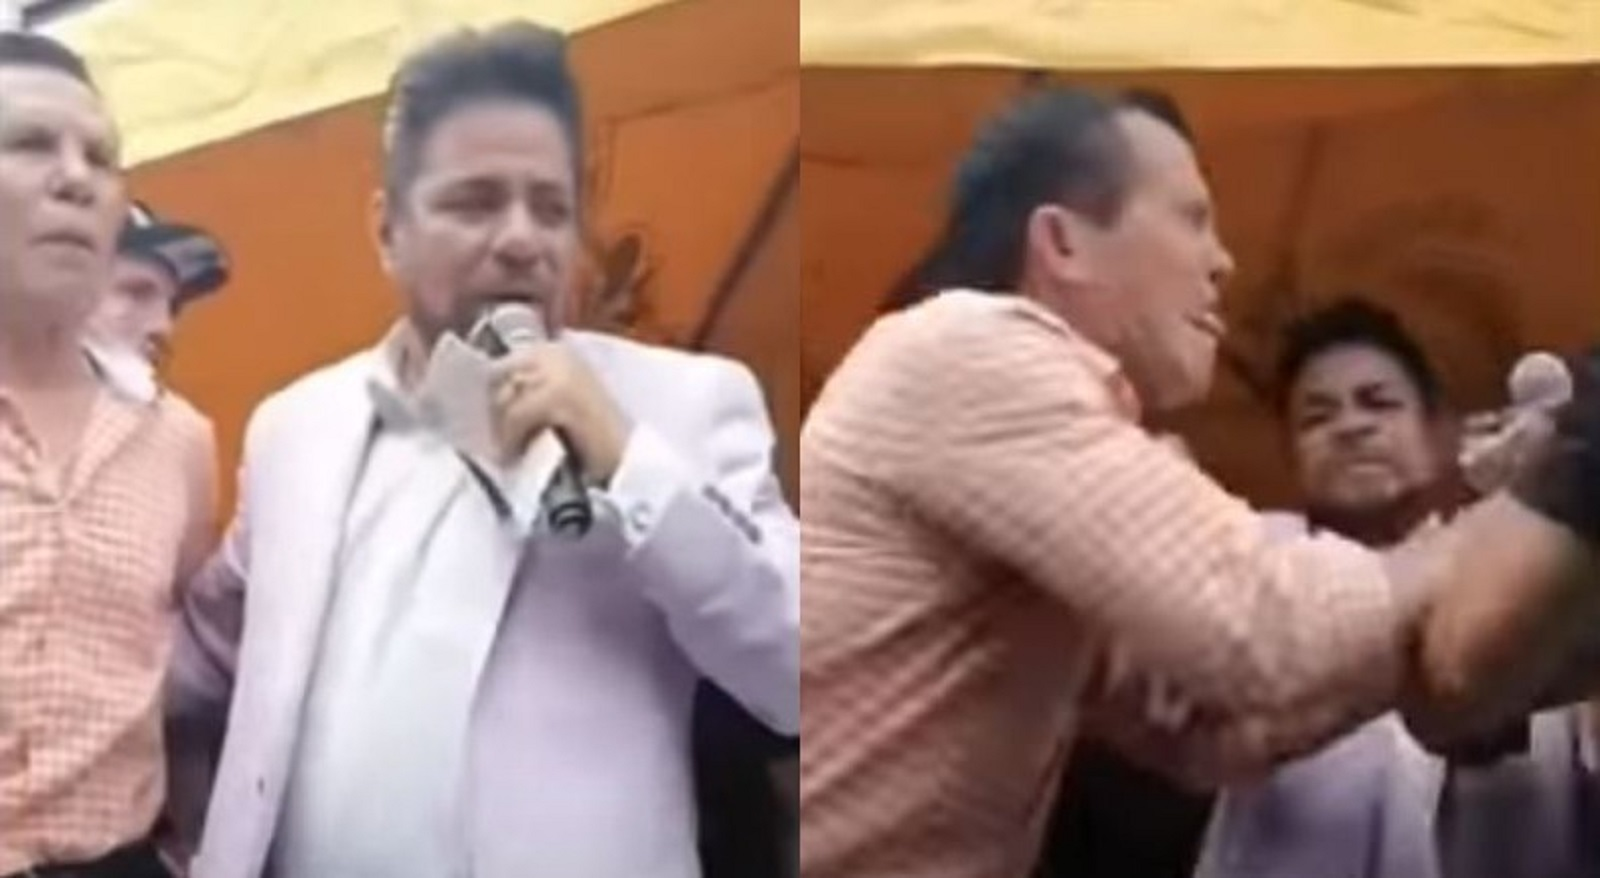 Watch: Chavez and Camacho Get Into An Altercation